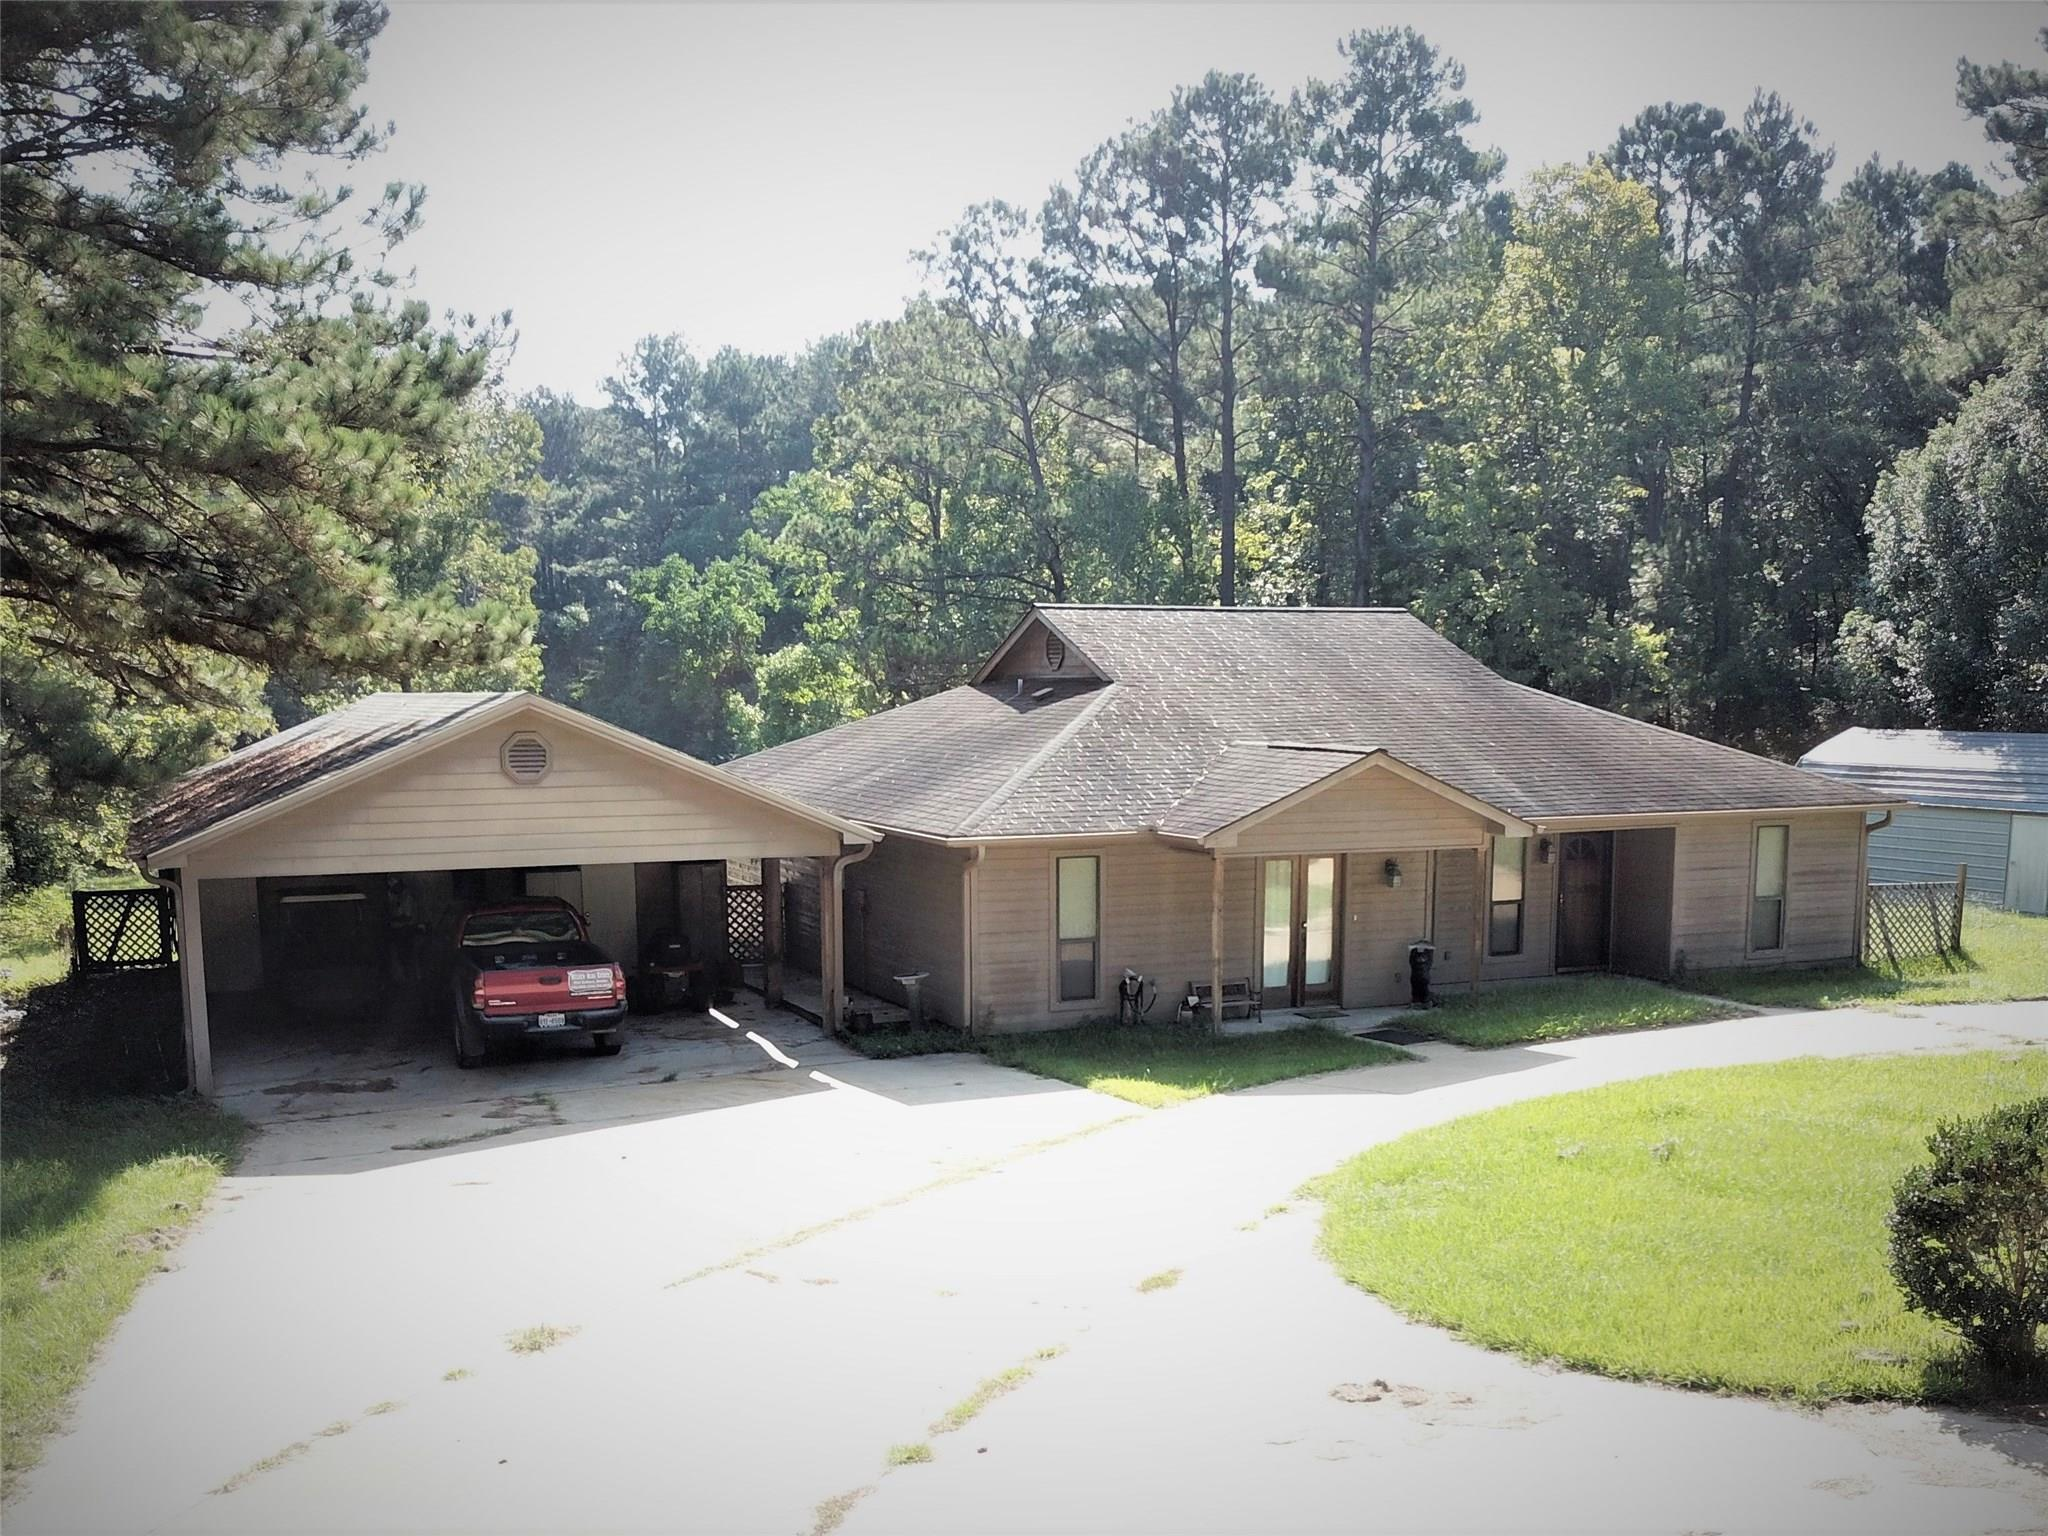 761 Scott Rd/Vb Woods Road Property Photo - Woodlake, TX real estate listing